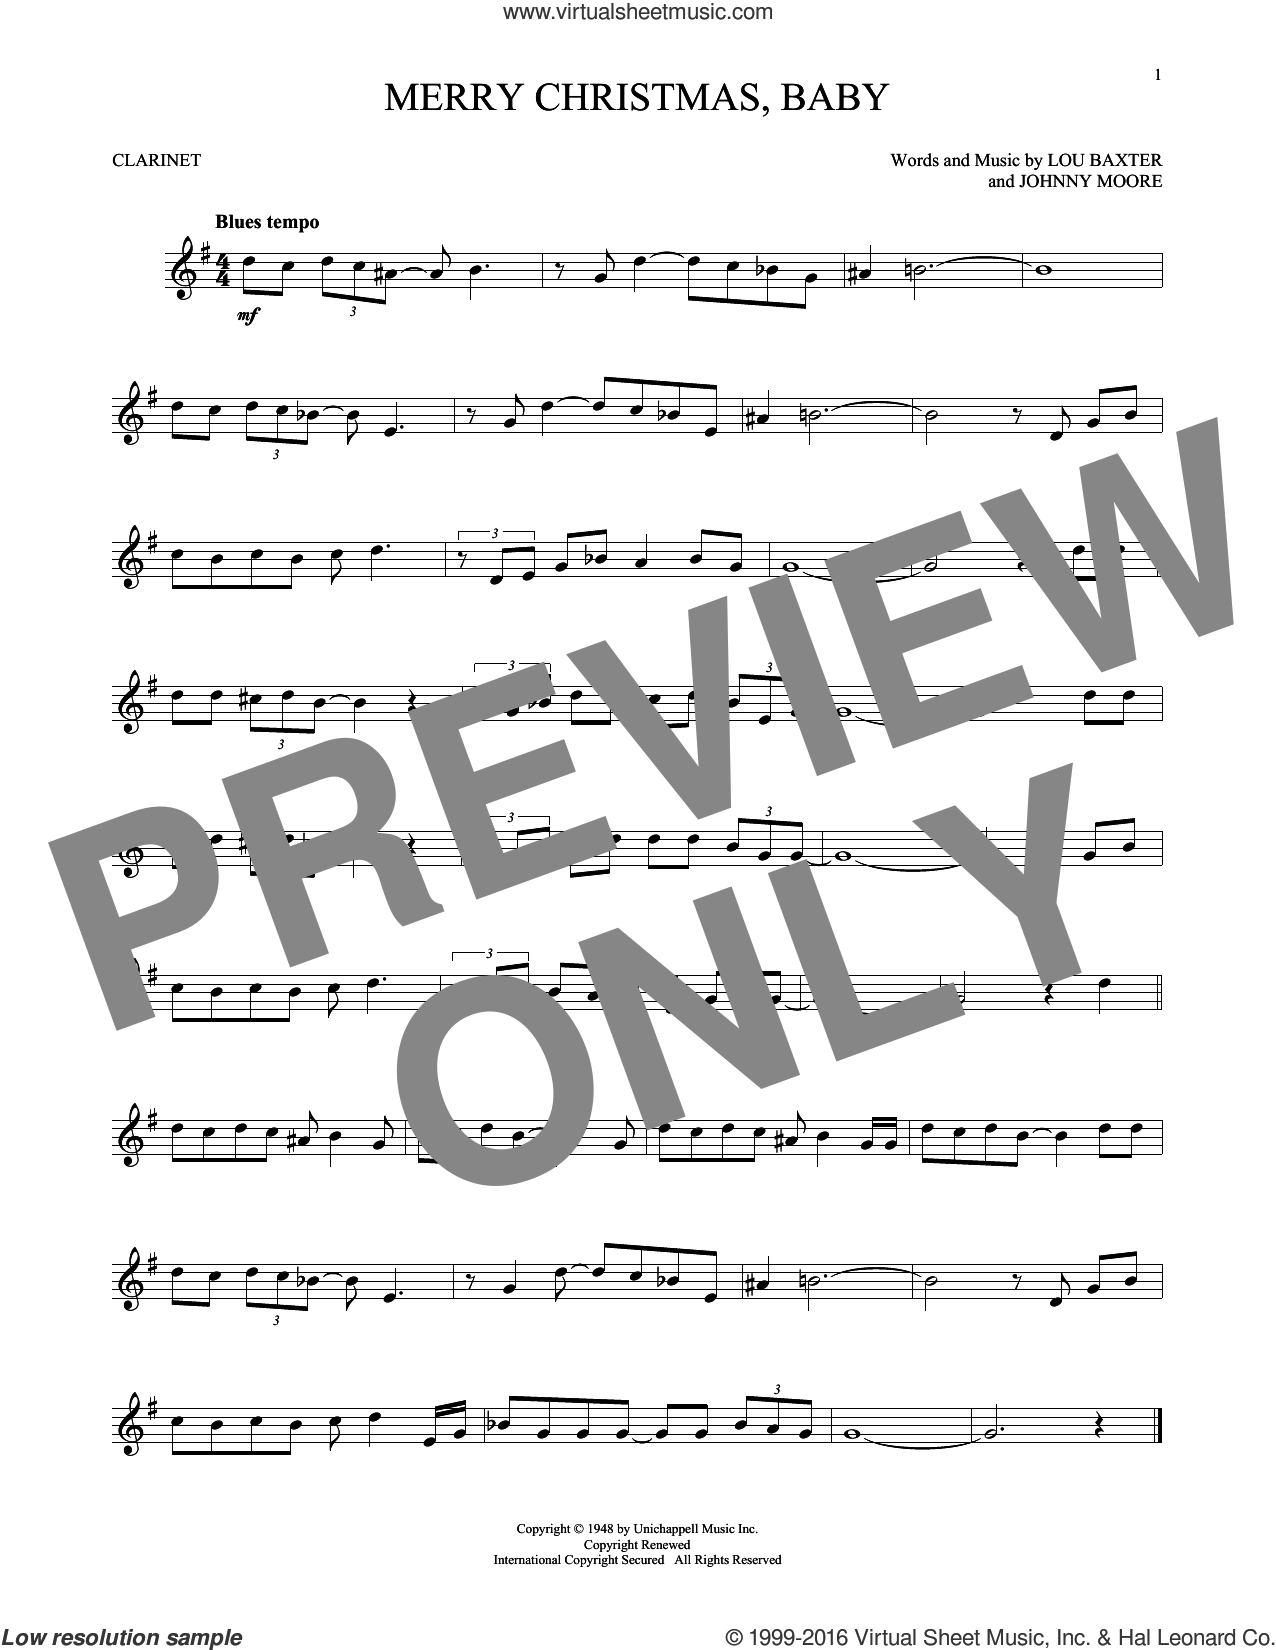 Merry Christmas, Baby sheet music for clarinet solo by Elvis Presley, Johnny Moore and Lou Baxter, intermediate skill level